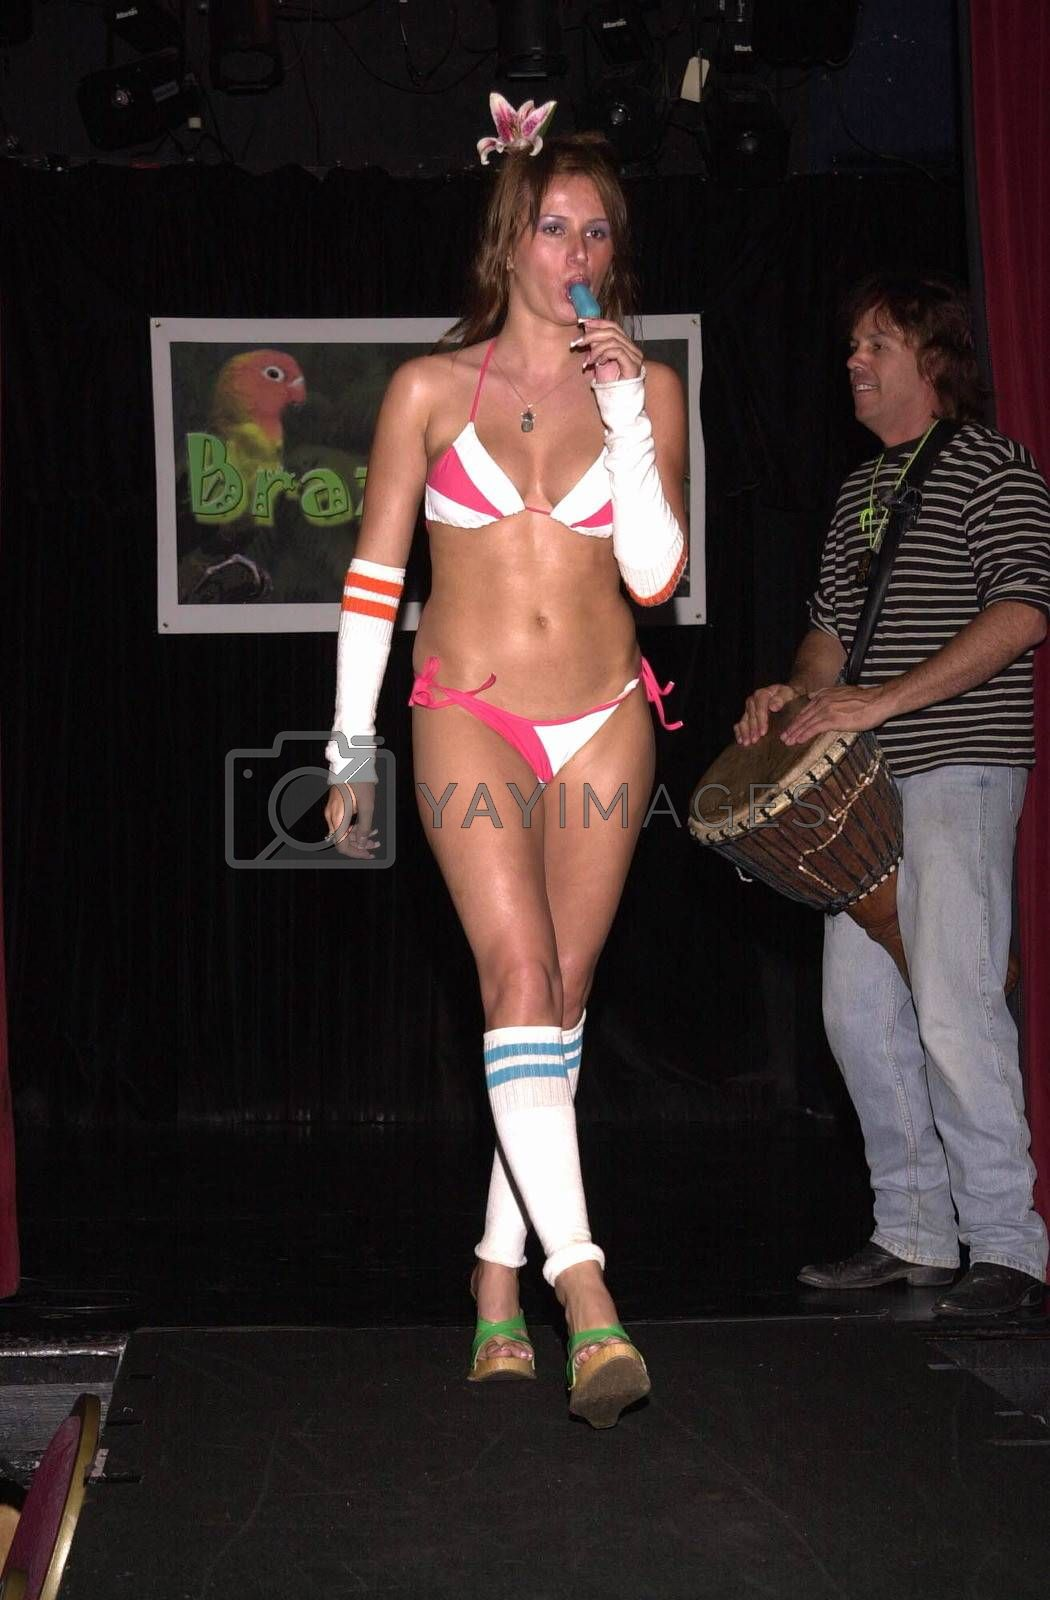 Model wearing the Braziliana swimwear collection at the Moviemaking Technology Showcase, featuring cutting edge movie technology, as well as two fashion shows, The Century Club, Century City, CA, 09-03-02